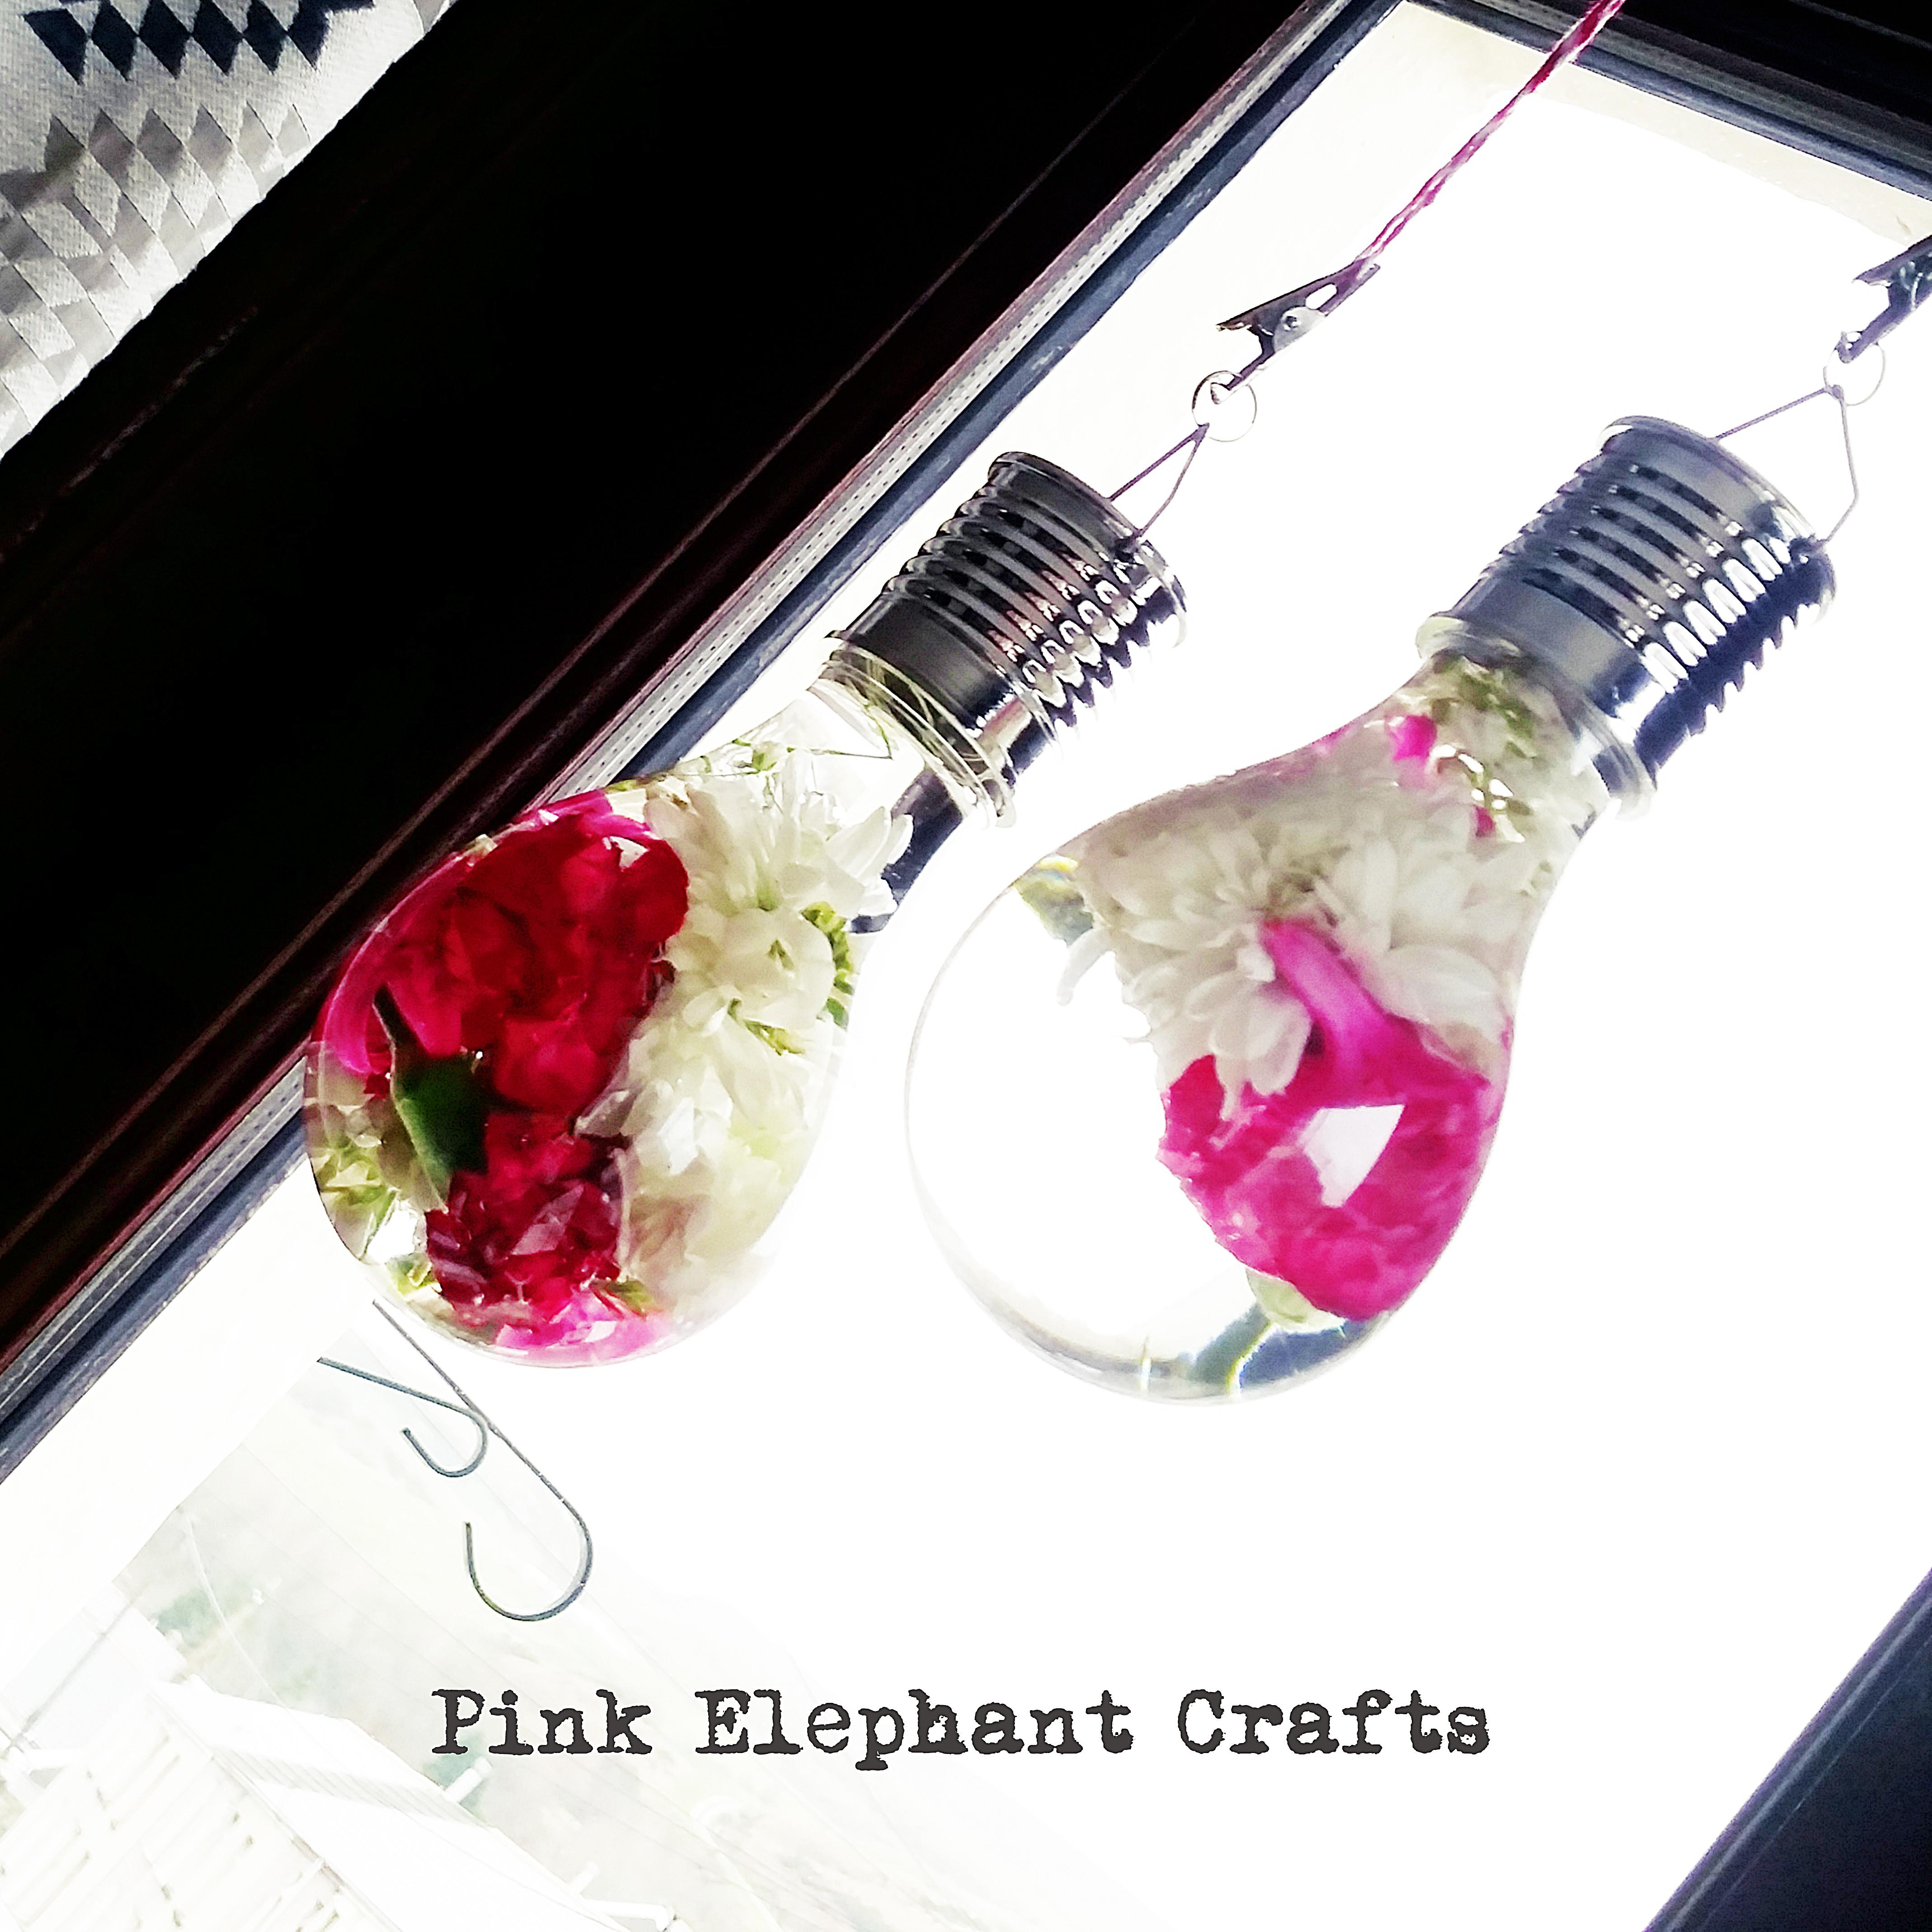 Hanging Light Bulb Flower Vase Pink Elephant Crafts